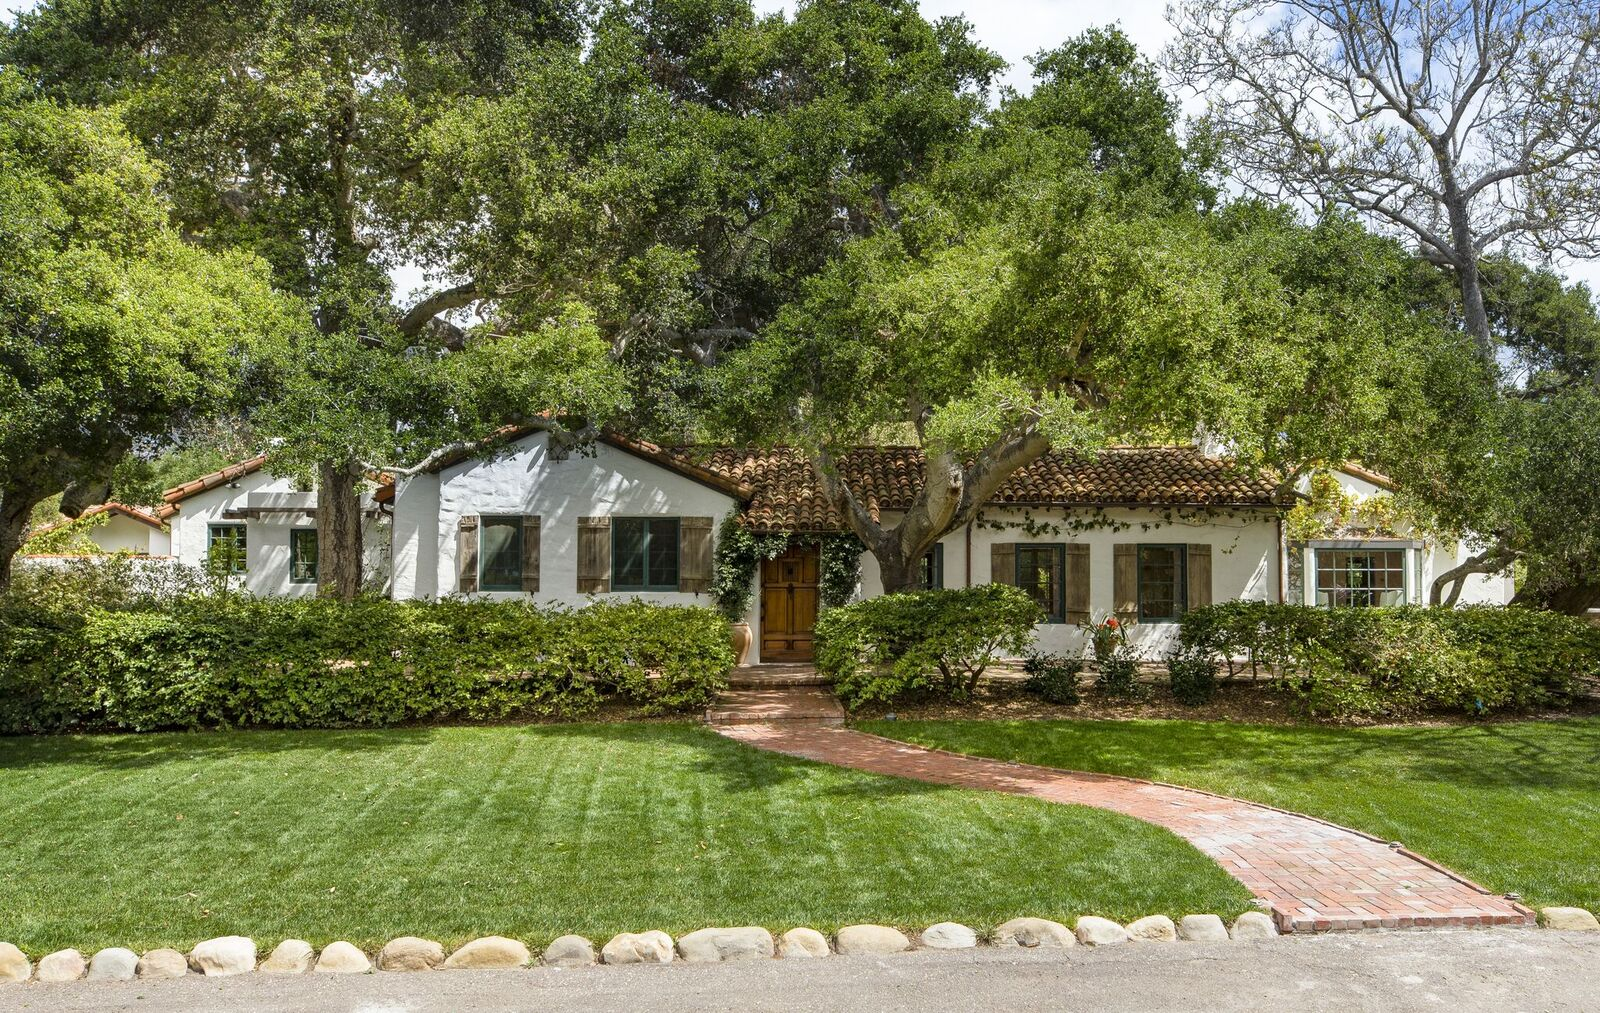 Spanish Revival-style home secluded in lush garden formerly owned by Jeff Bridges, and now Oprah Winfrey.